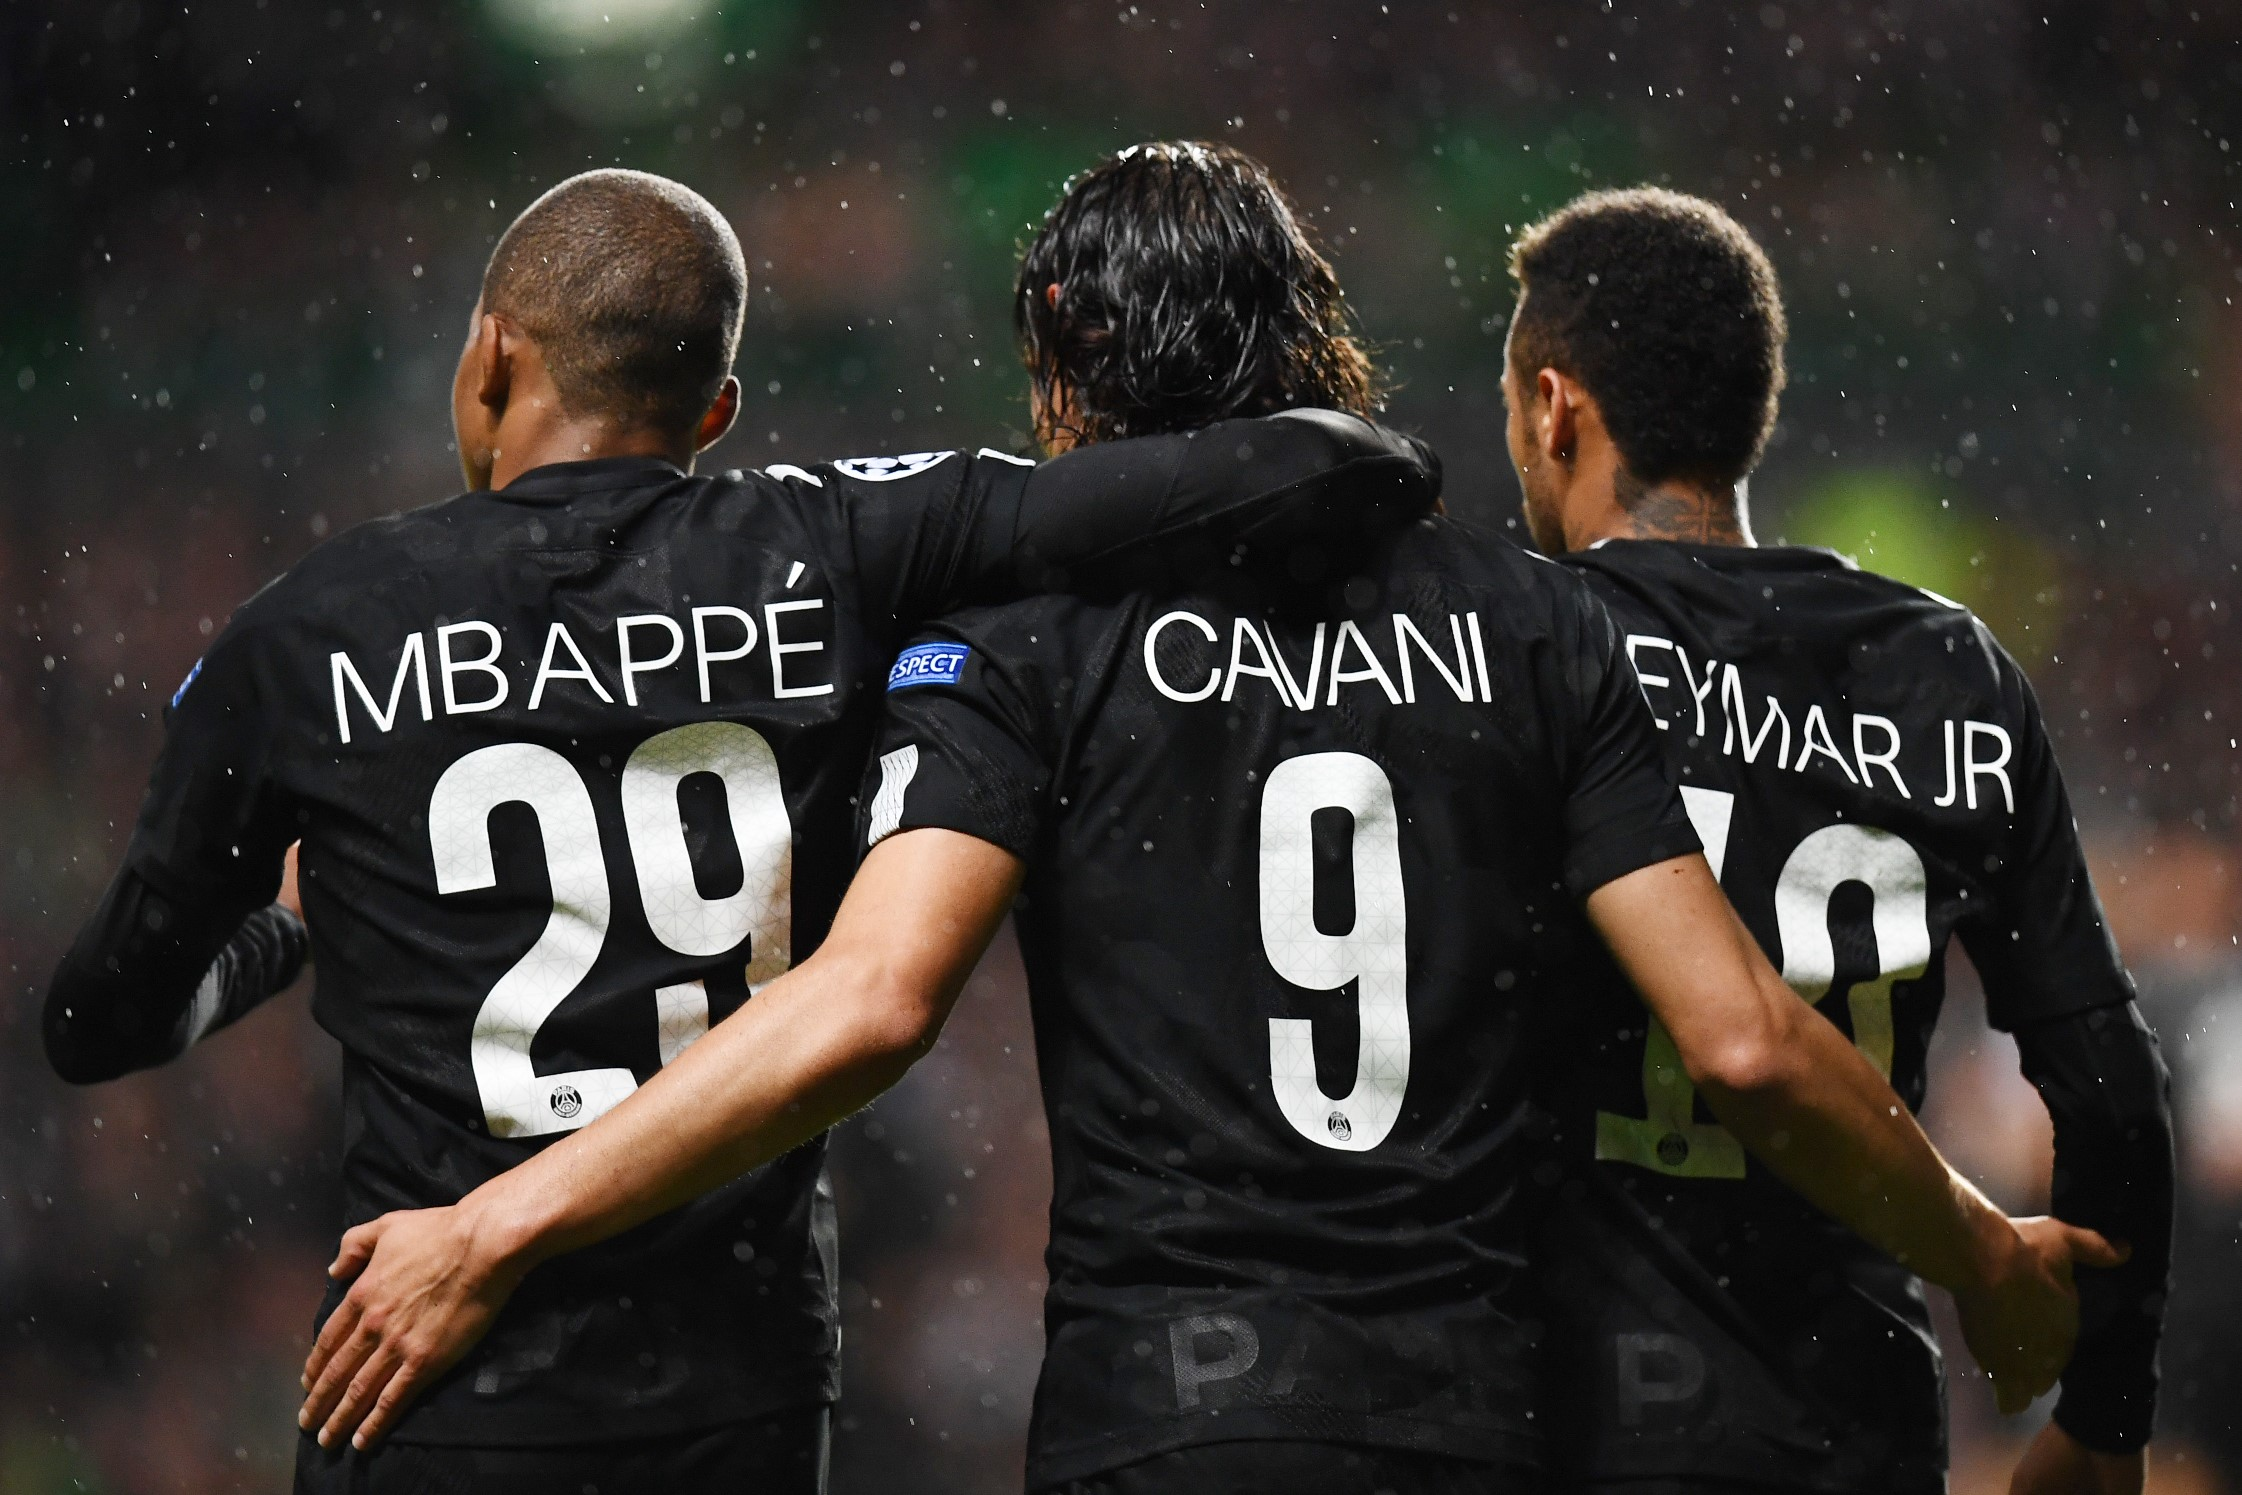 Paris Saint-Germain's Brazilian striker Neymar (R) celebrates with Paris Saint-Germain's French striker Kylian Mbappe (L) and Paris Saint-Germain's Uruguayan striker Edinson Cavani (C) after scoring the opening goal of the UEFA Champions League Group B fo